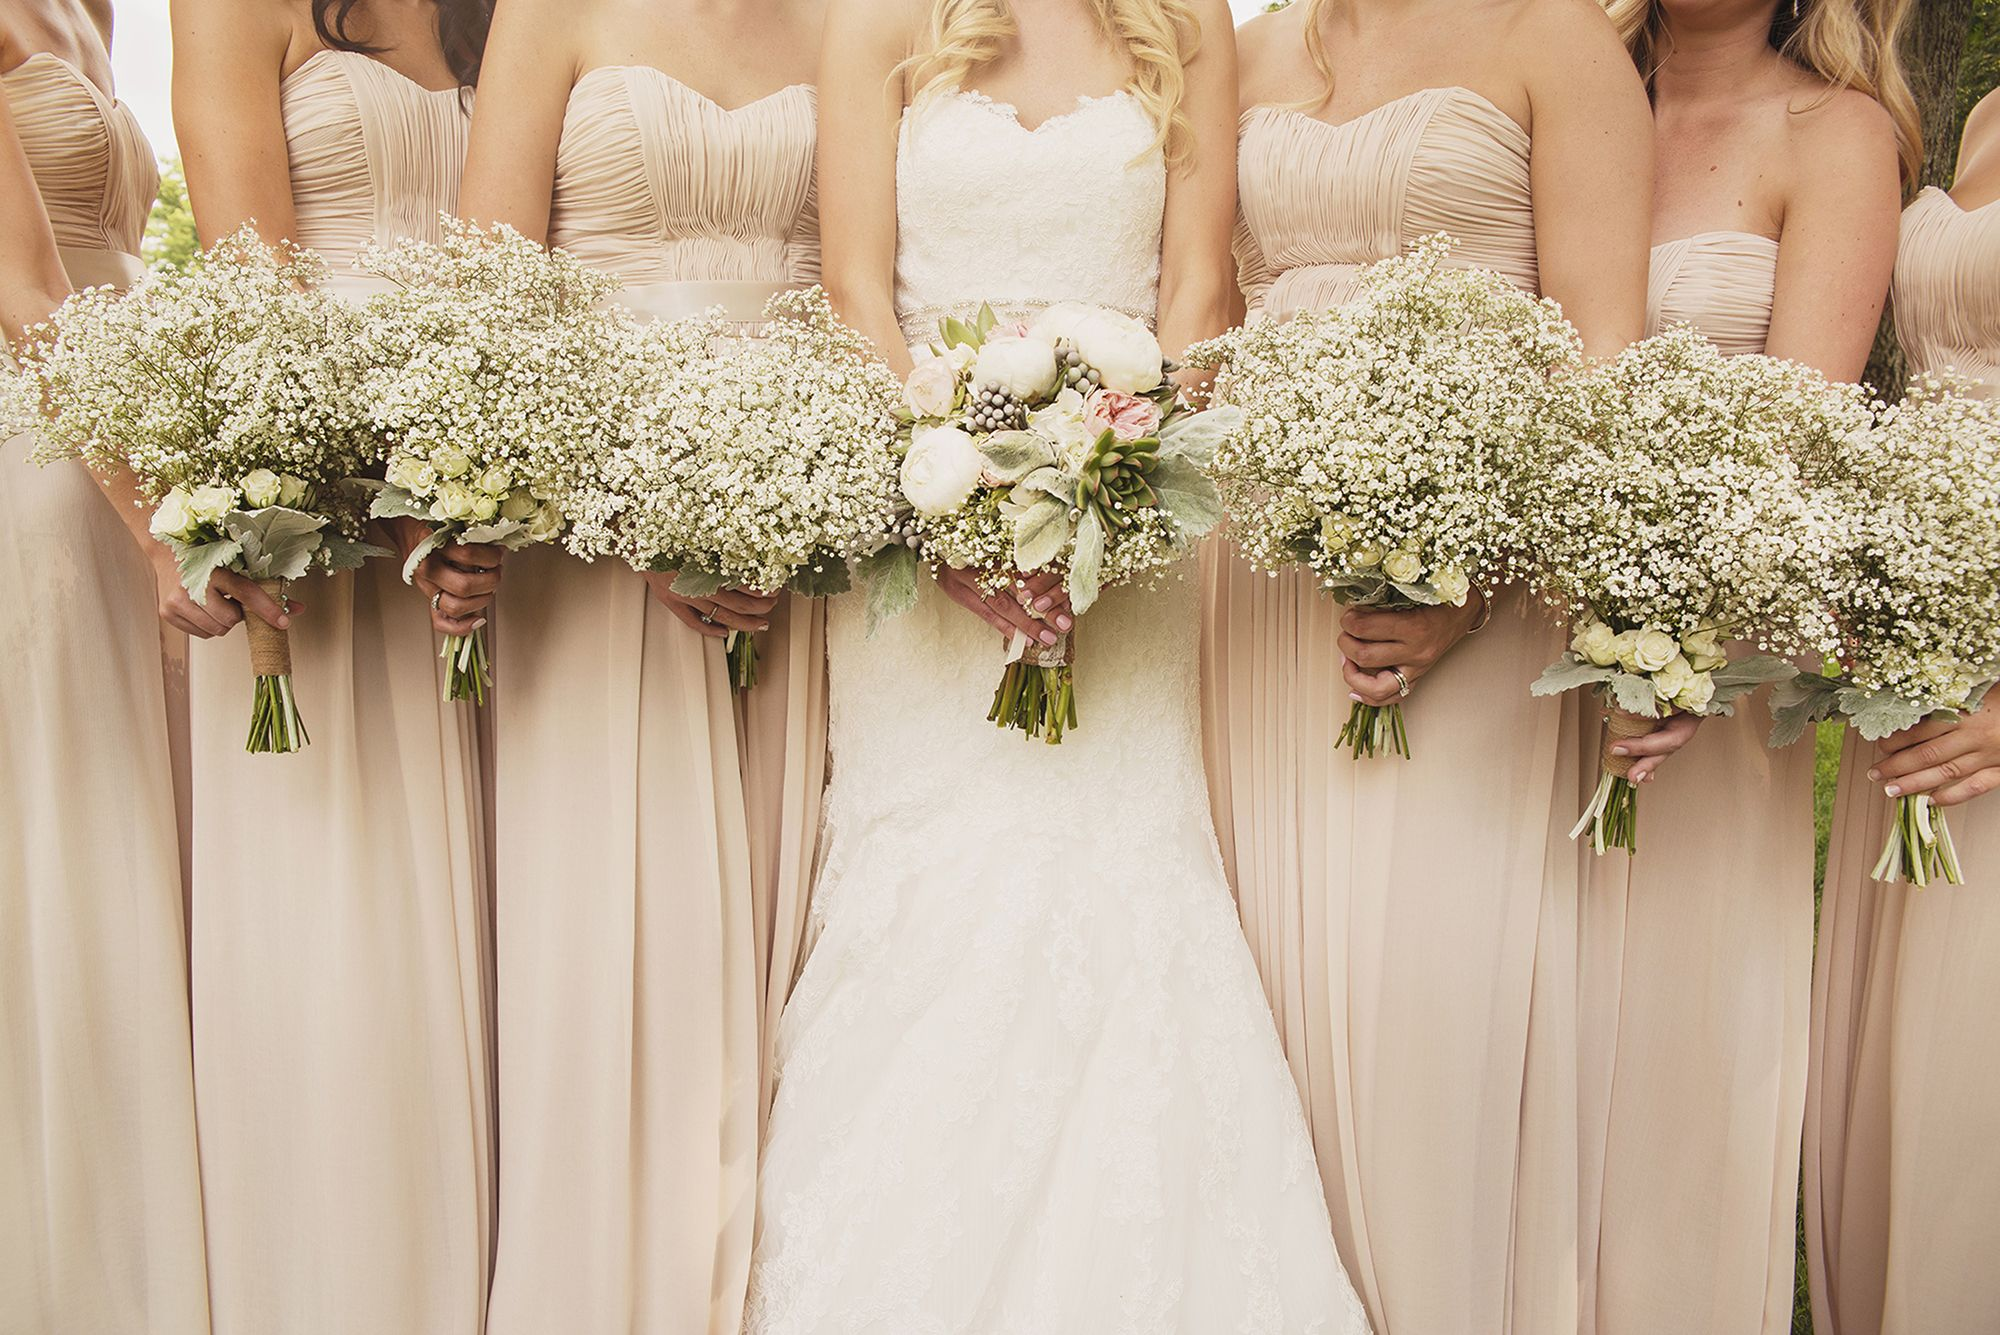 f5688c0ad26d Simple Baby's Breath Bouquets #mercibeaucoupfloral #theknot | Summer ...